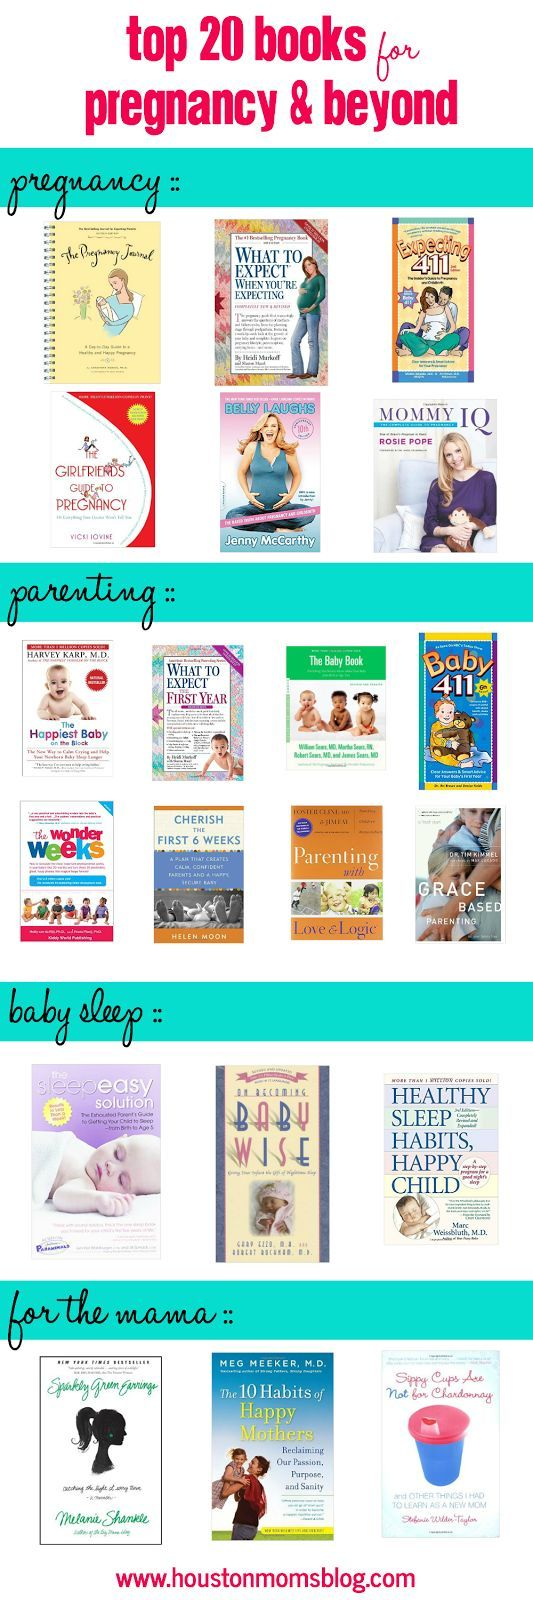 Top 20 books for pregnancy and beyond. Great books for new moms and veteran moms. Best pregnancy, parenting, baby sleep, and mama books! Great list!